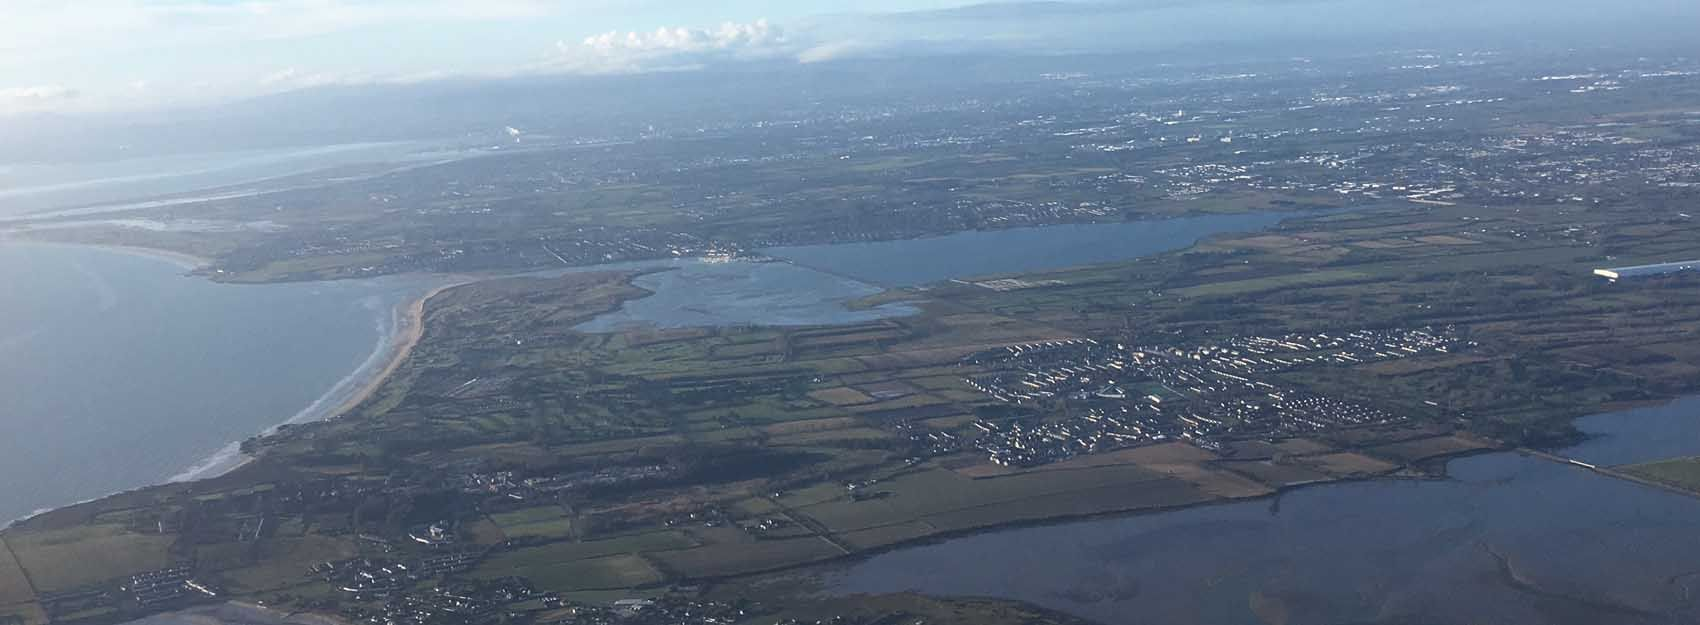 aerial view of Dublin from an airplane